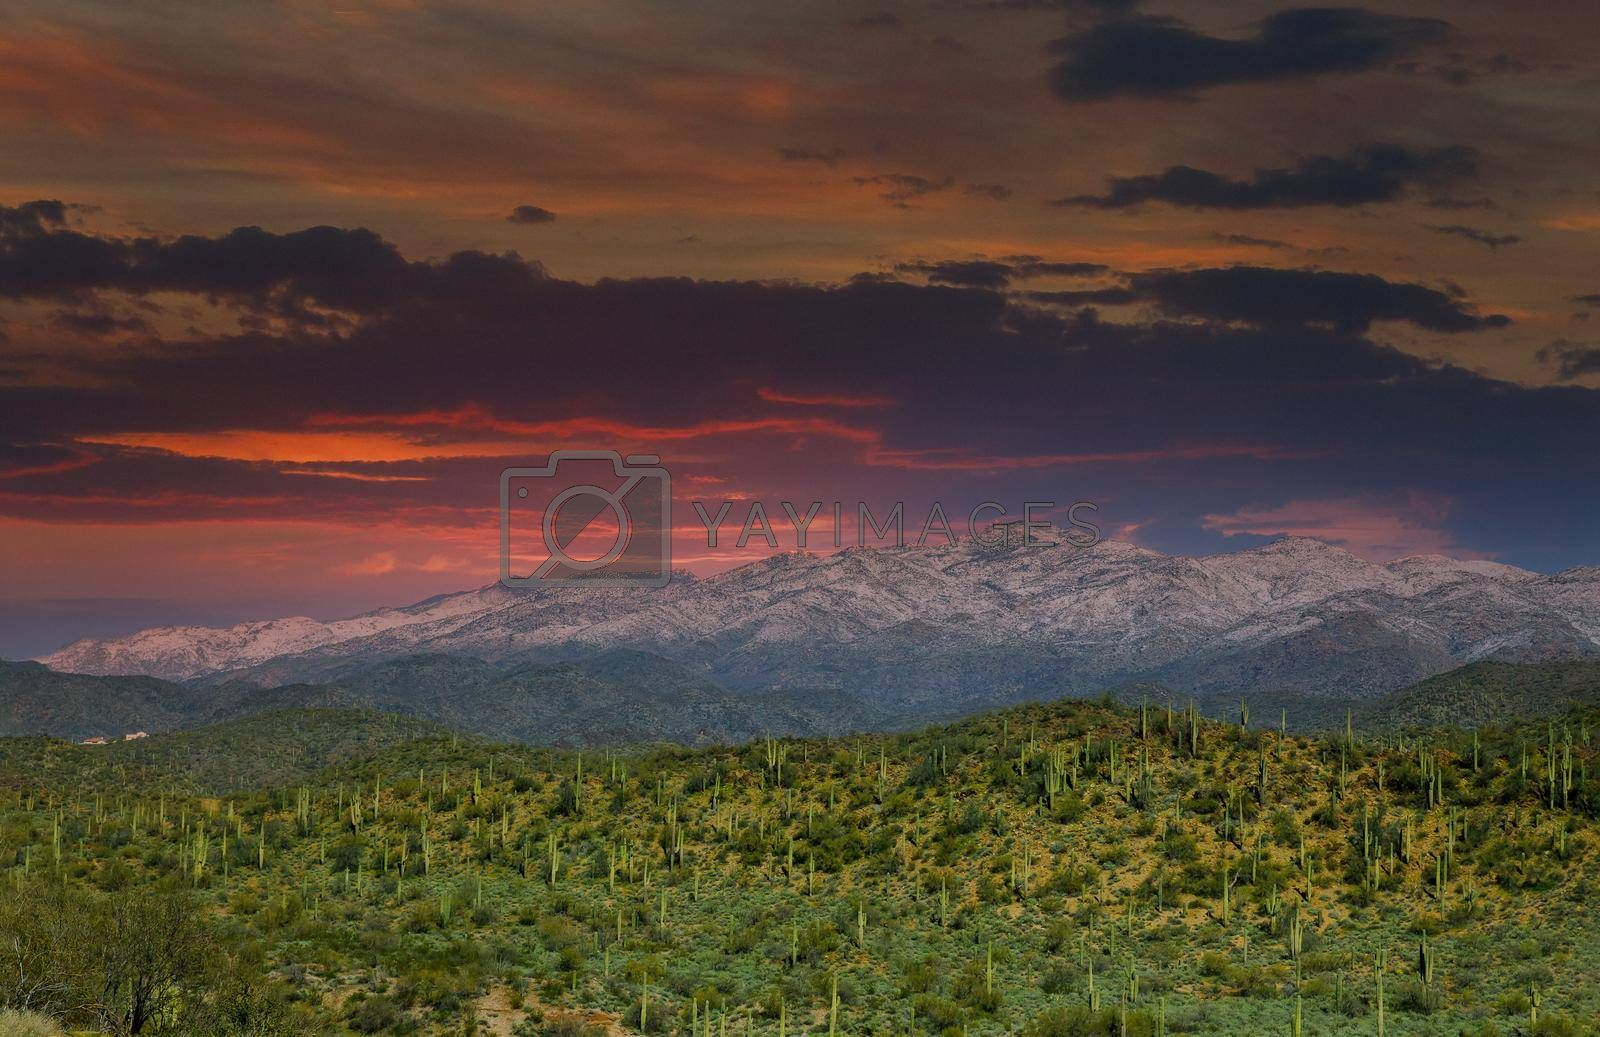 Arizona desert landscape with snow covered mountains in the cactus at sunset near Phoenix, Arizona US